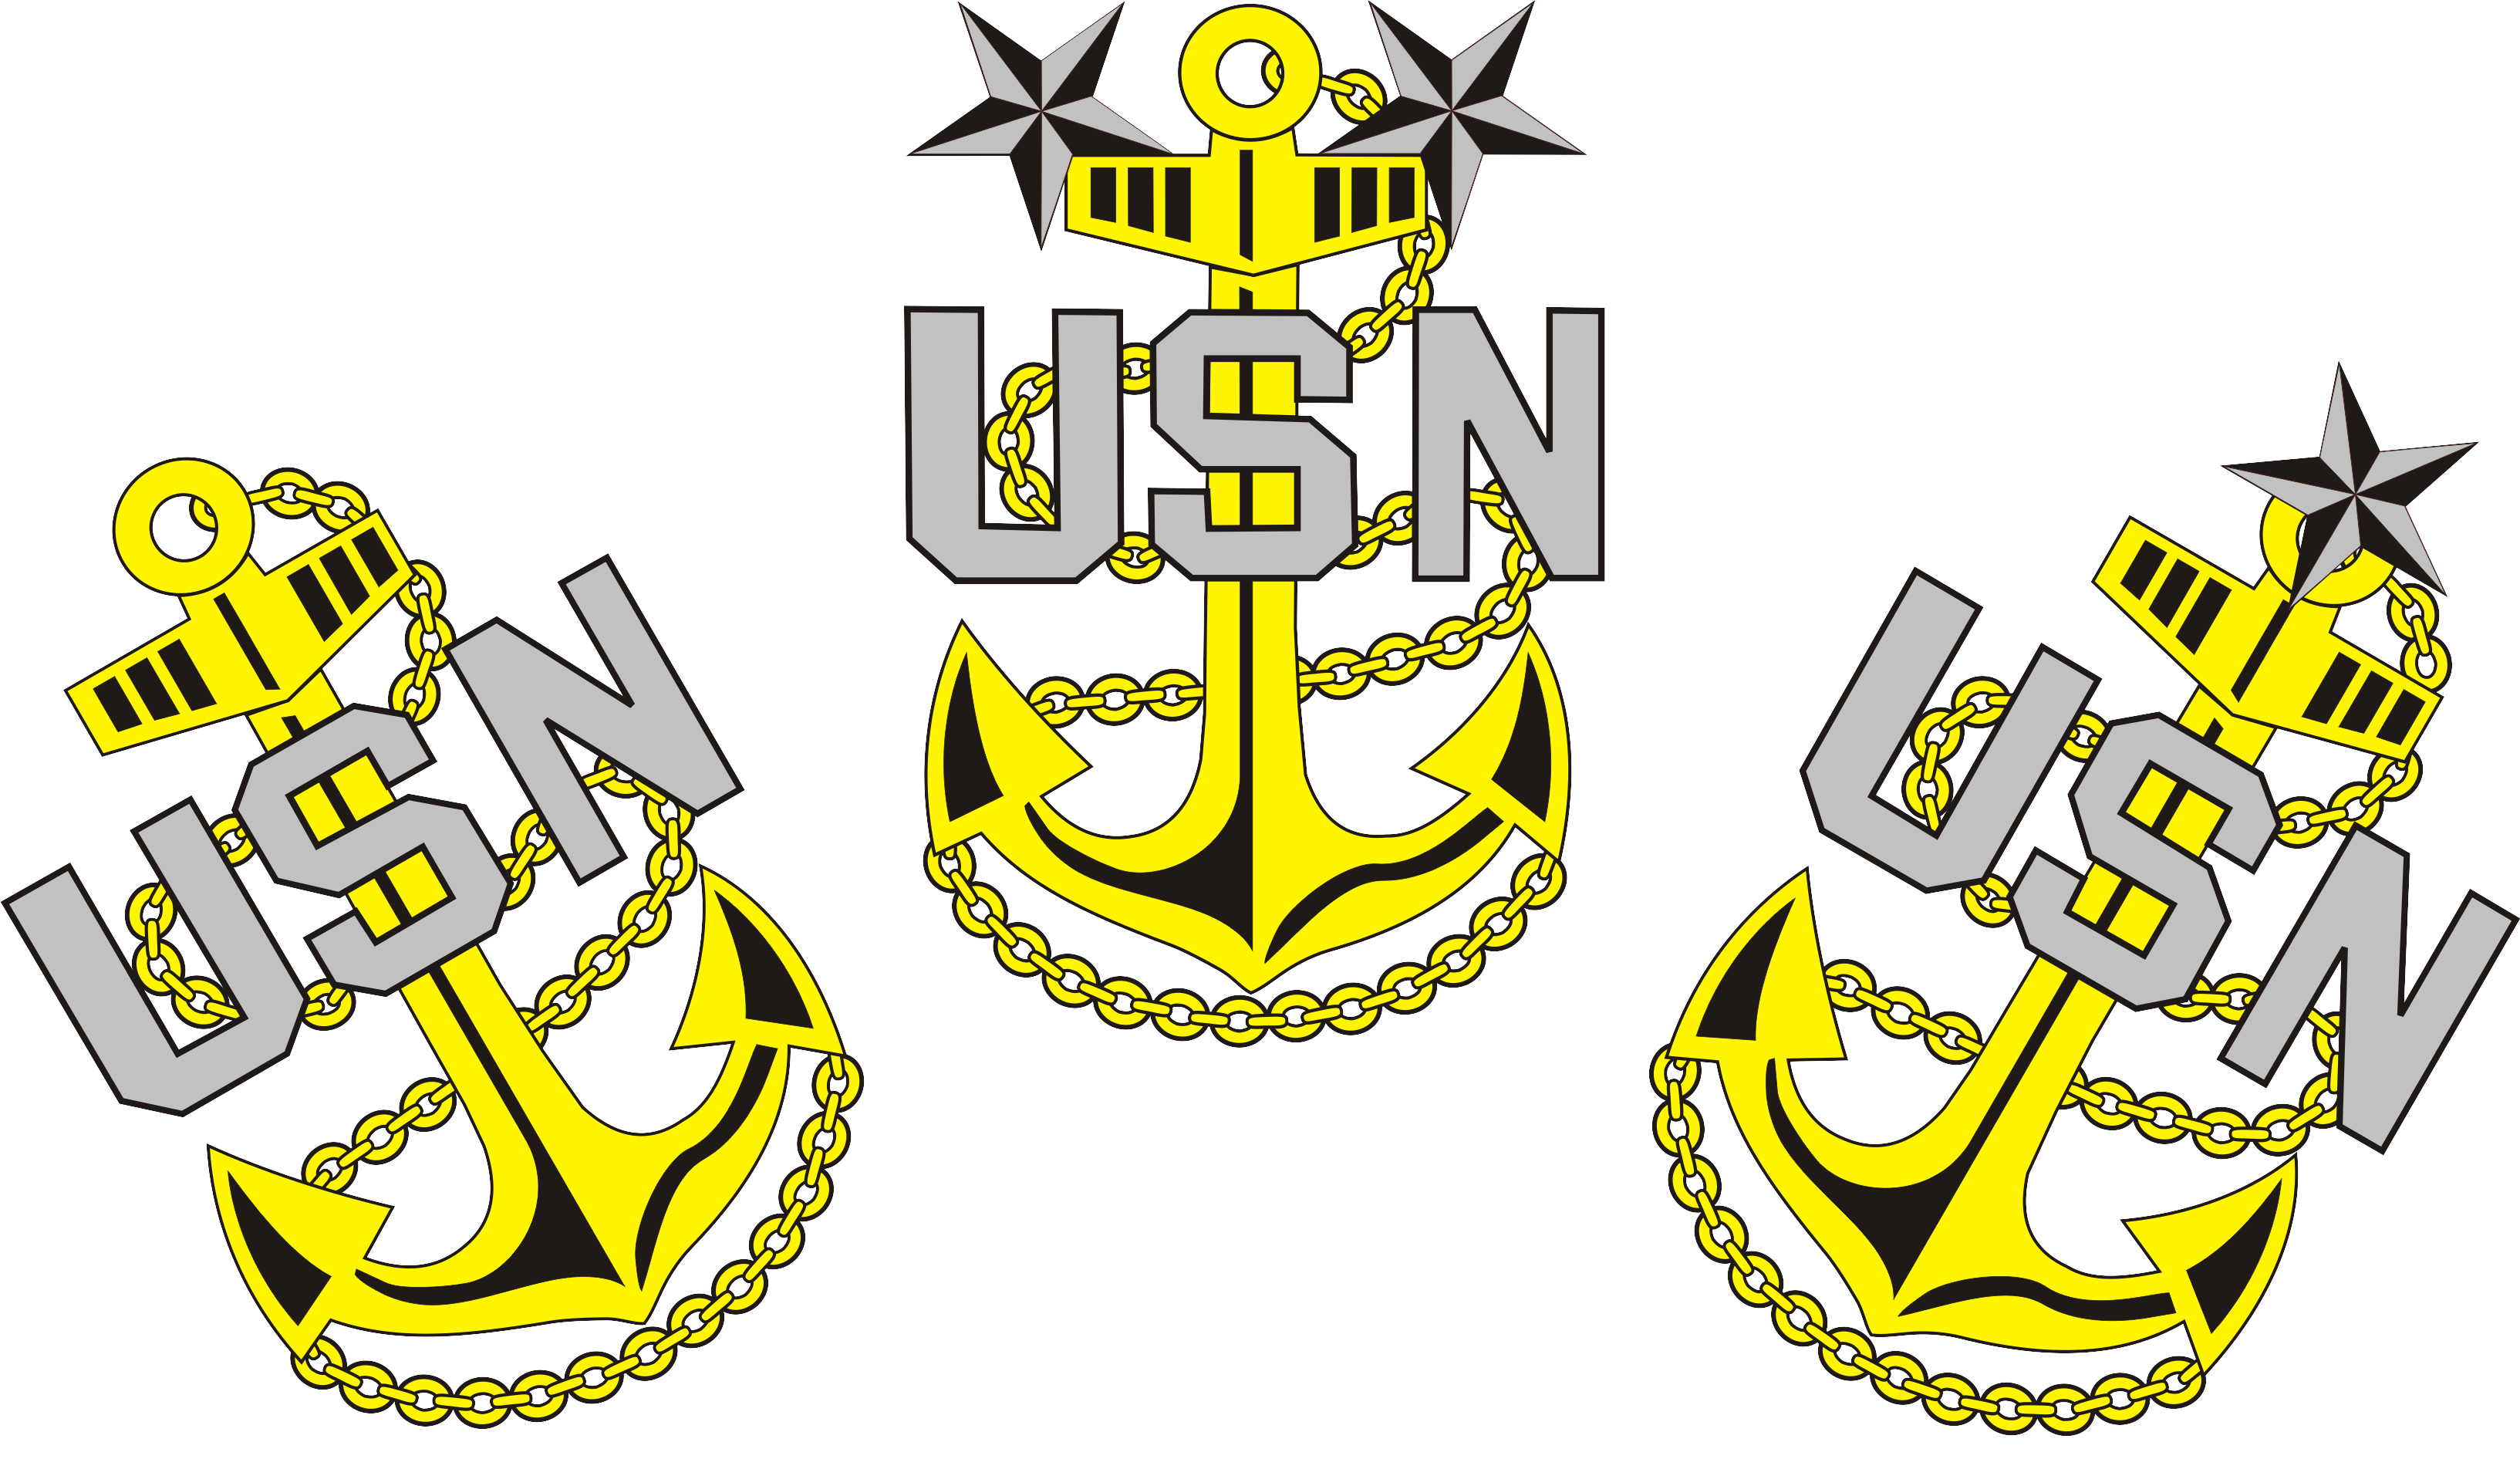 Clipart anchor eps. Welcome to the goatlocker